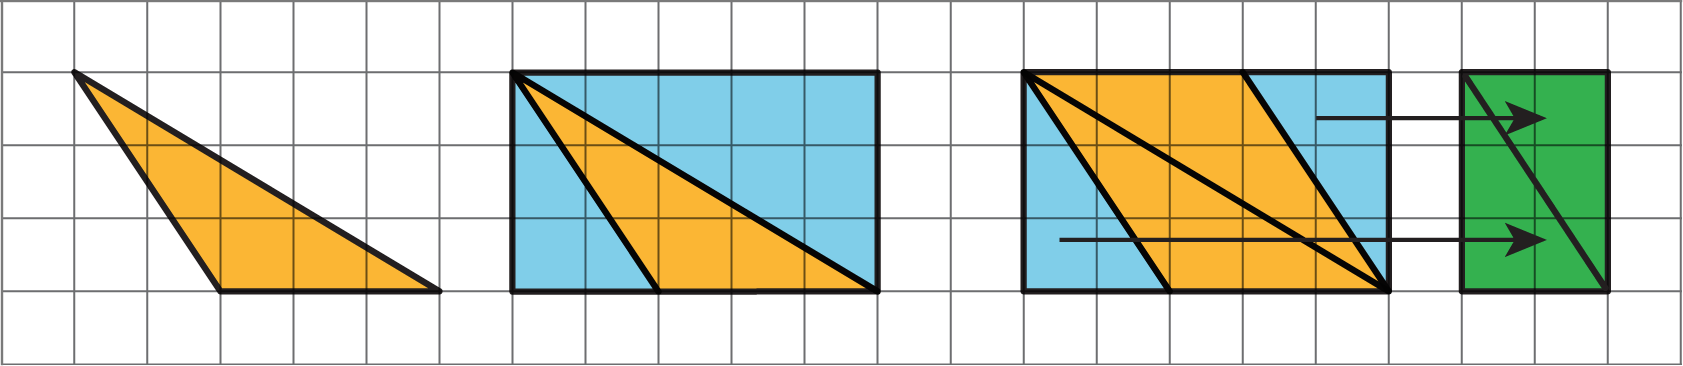 Three images of the same triangle. The first image is the triangle alone. The second is the triangle surrounded by a rectangle. The third image is of the triangle now with a copy composed into a parallelogram within the rectangle, with arrows drawing the remaining parts of the rectangle into a smaller rectangle.